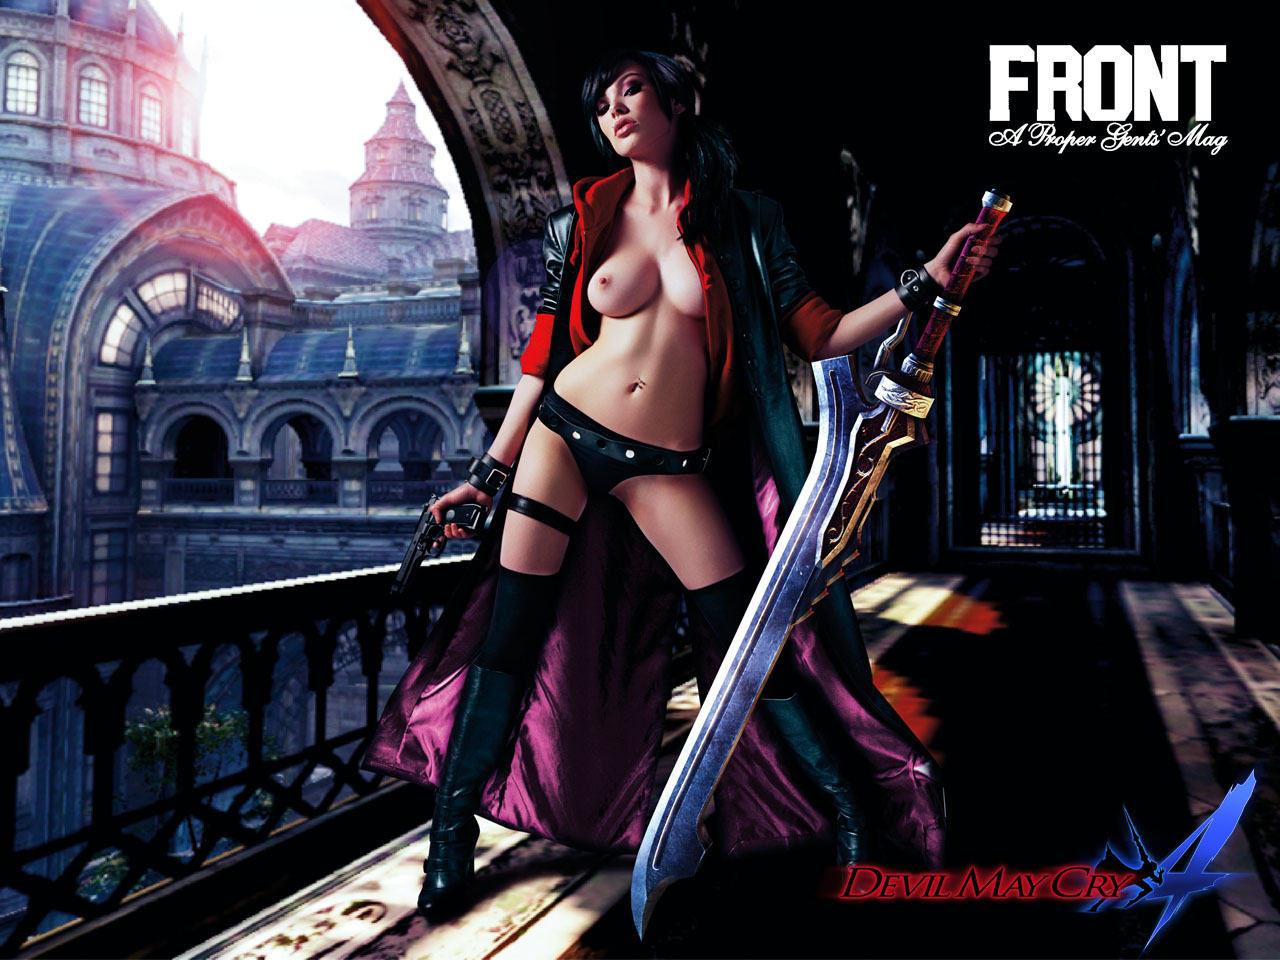 Devil may cry lady xxx smut image